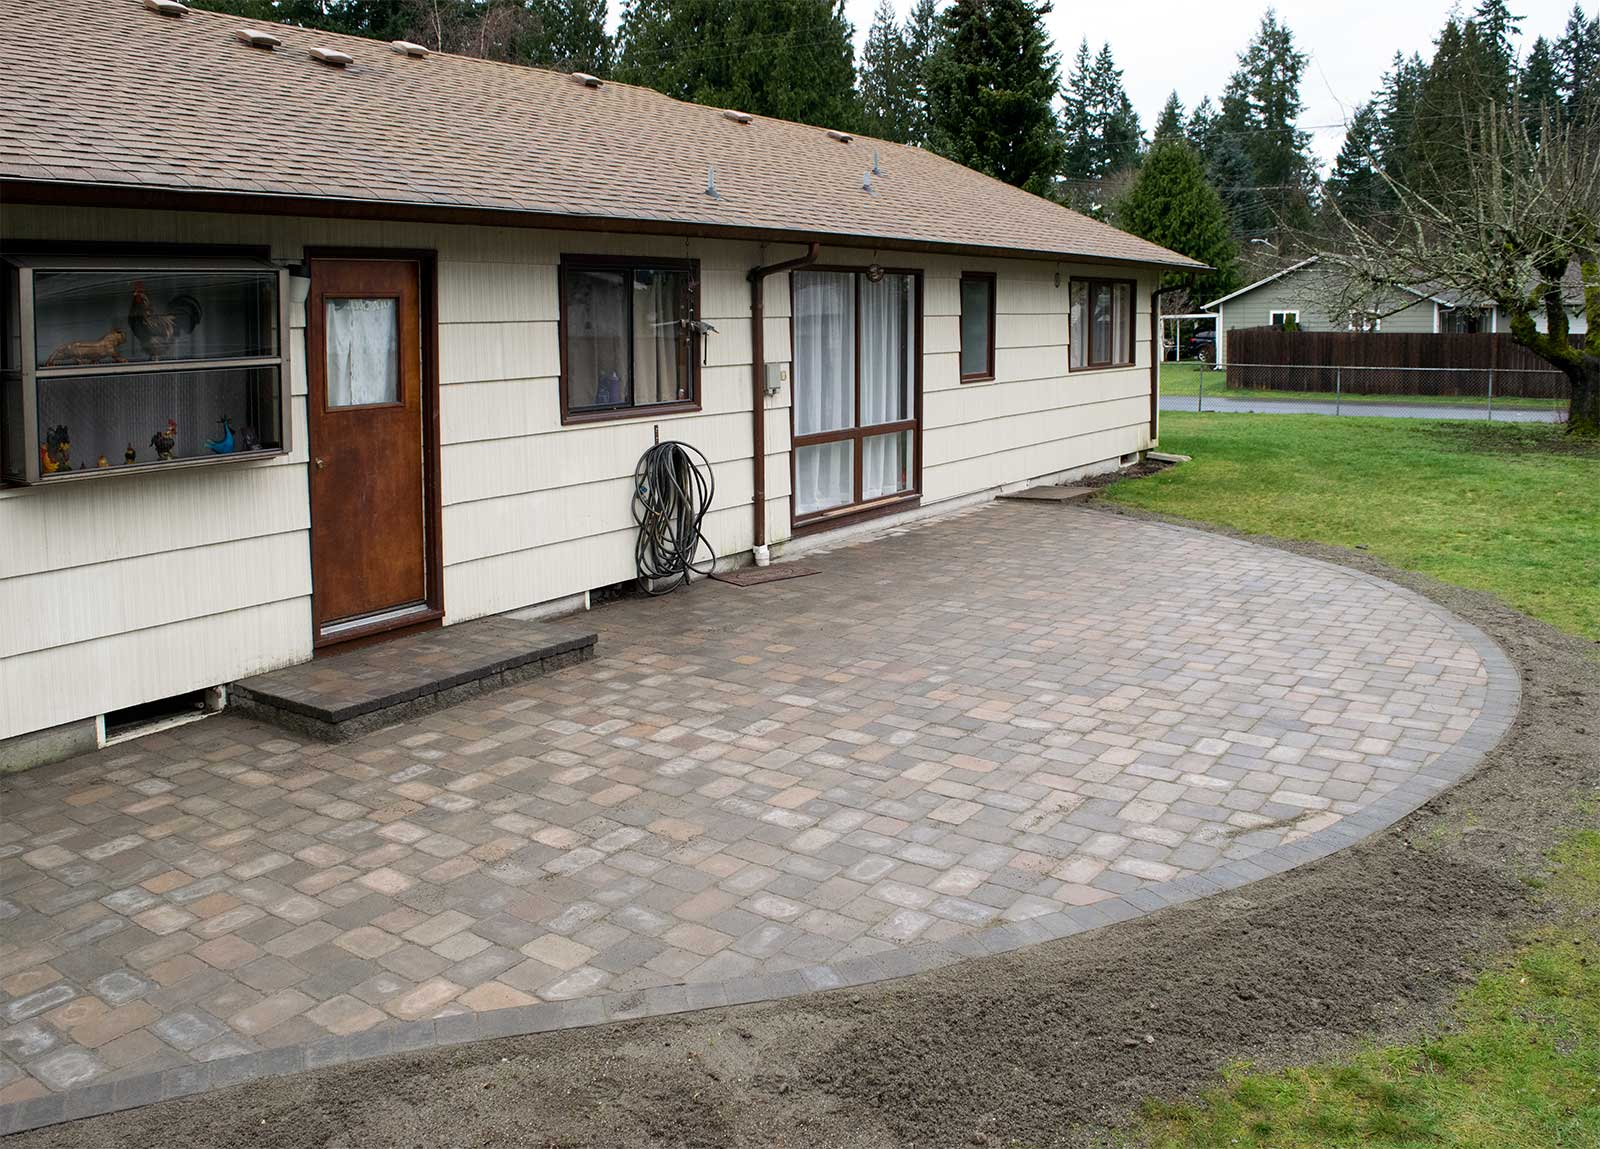 Roca style tumbled paver patio brings new life to this Lacey rambler's backyard. Point to the picture to see how it looked before.